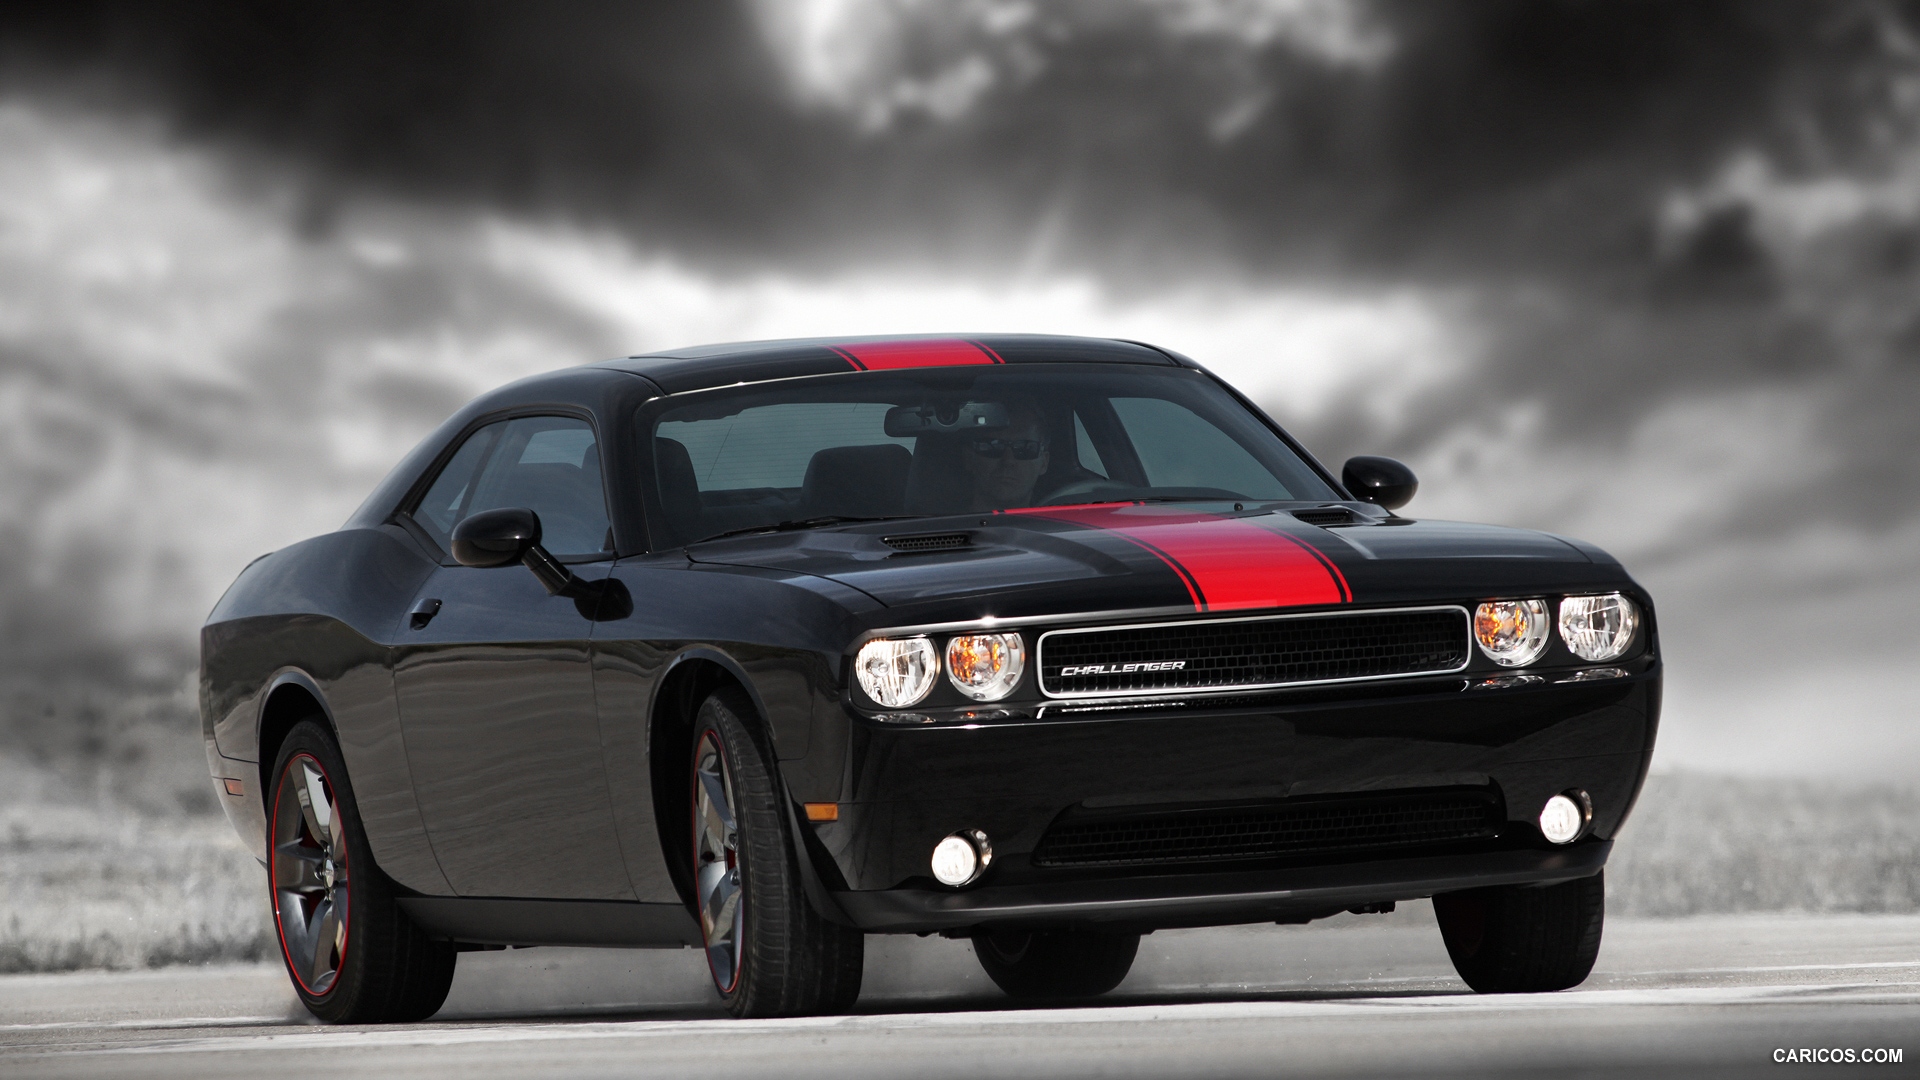 1920x1080 - Dodge Challenger Rallye Wallpapers 14